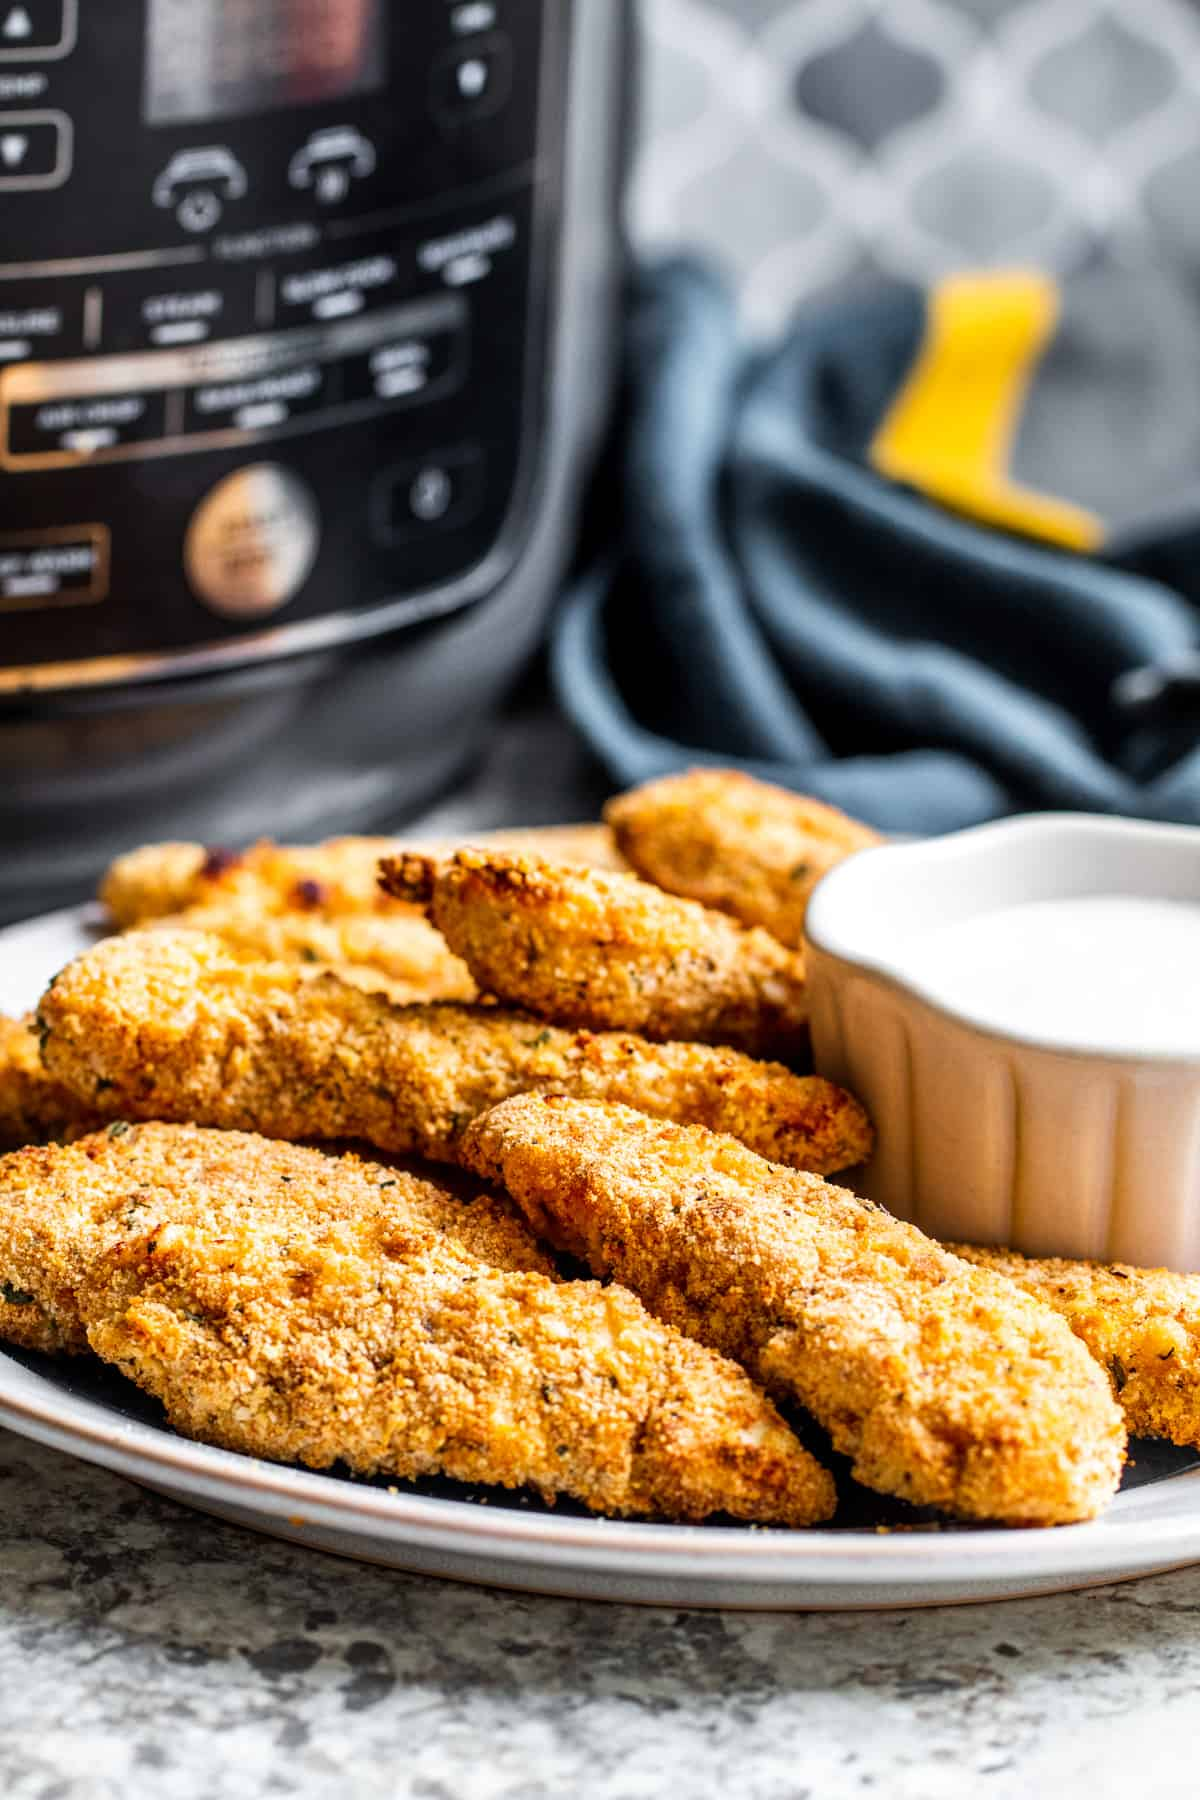 Chicken tenders on plate with sauce and air fryer in the background.